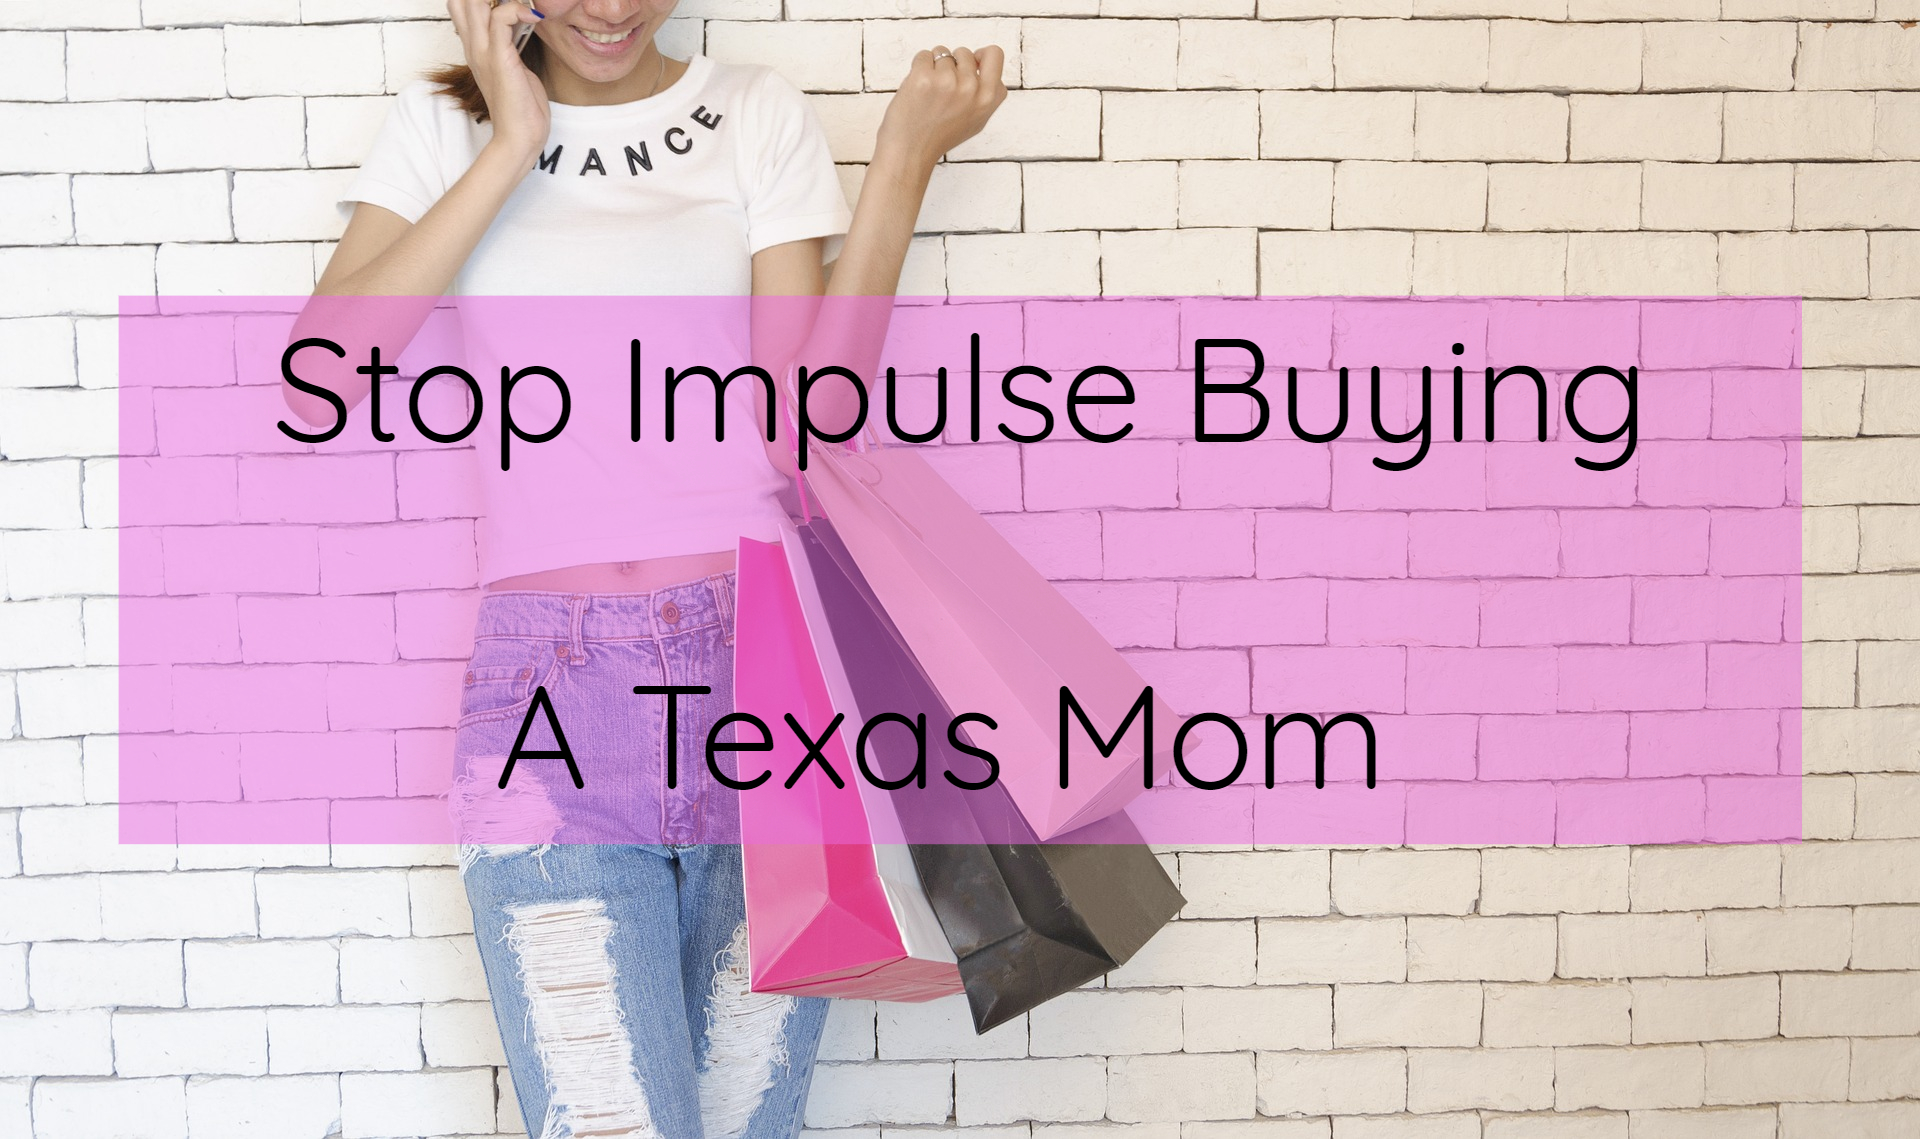 Stop impulse buying!! We can't #savemoney if we're always purchasing goods on a whim!